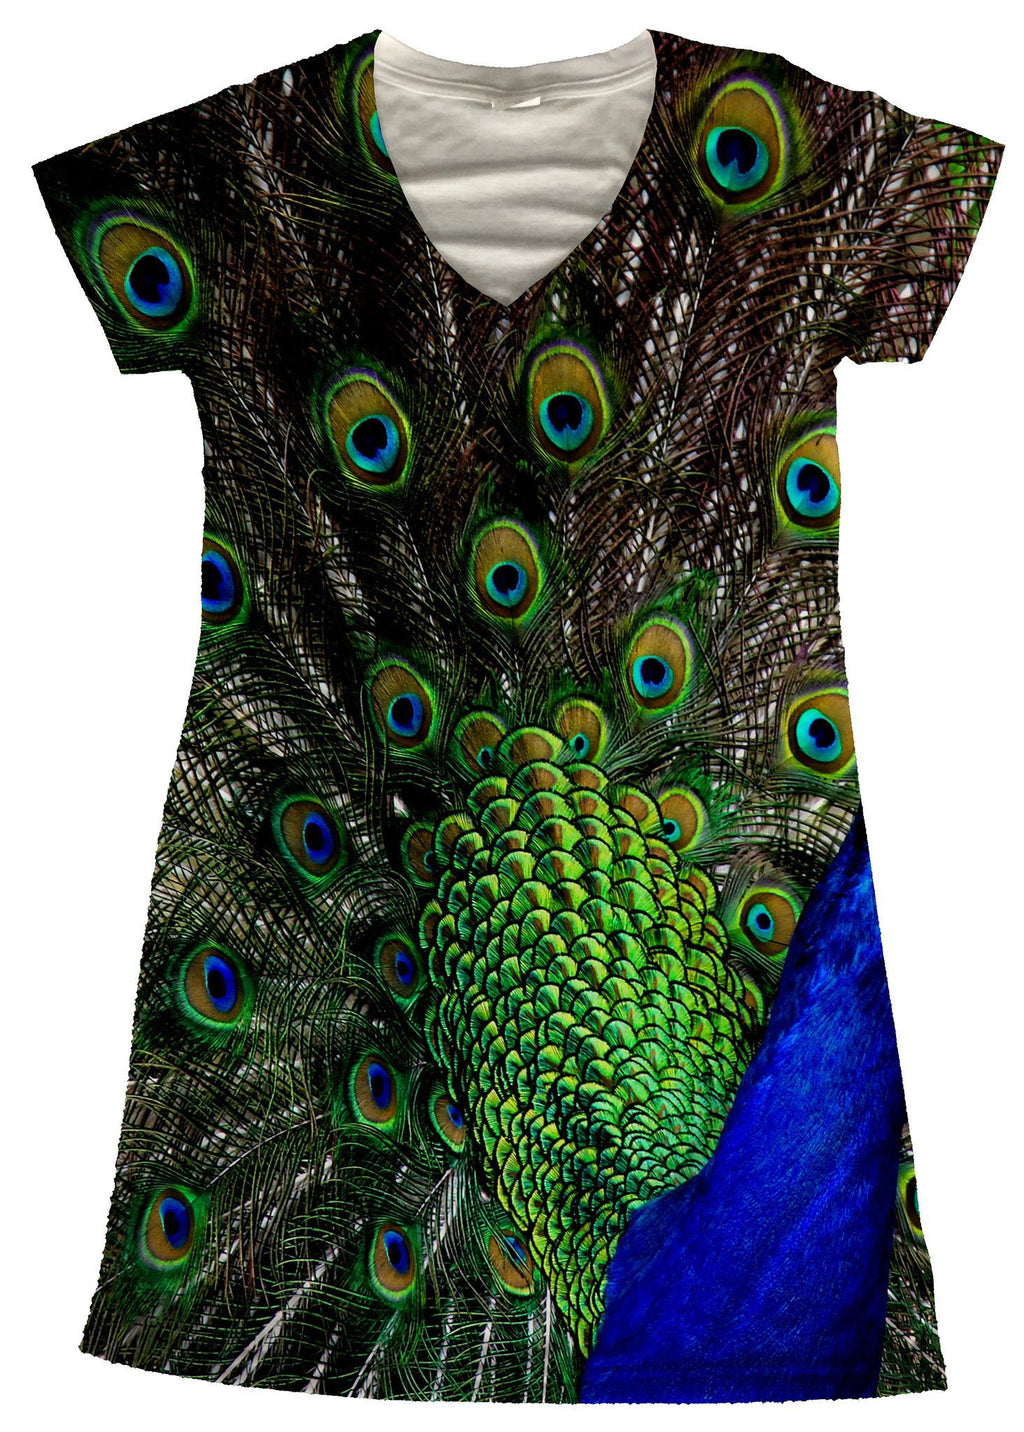 Peacock Dress - Potter's Printing